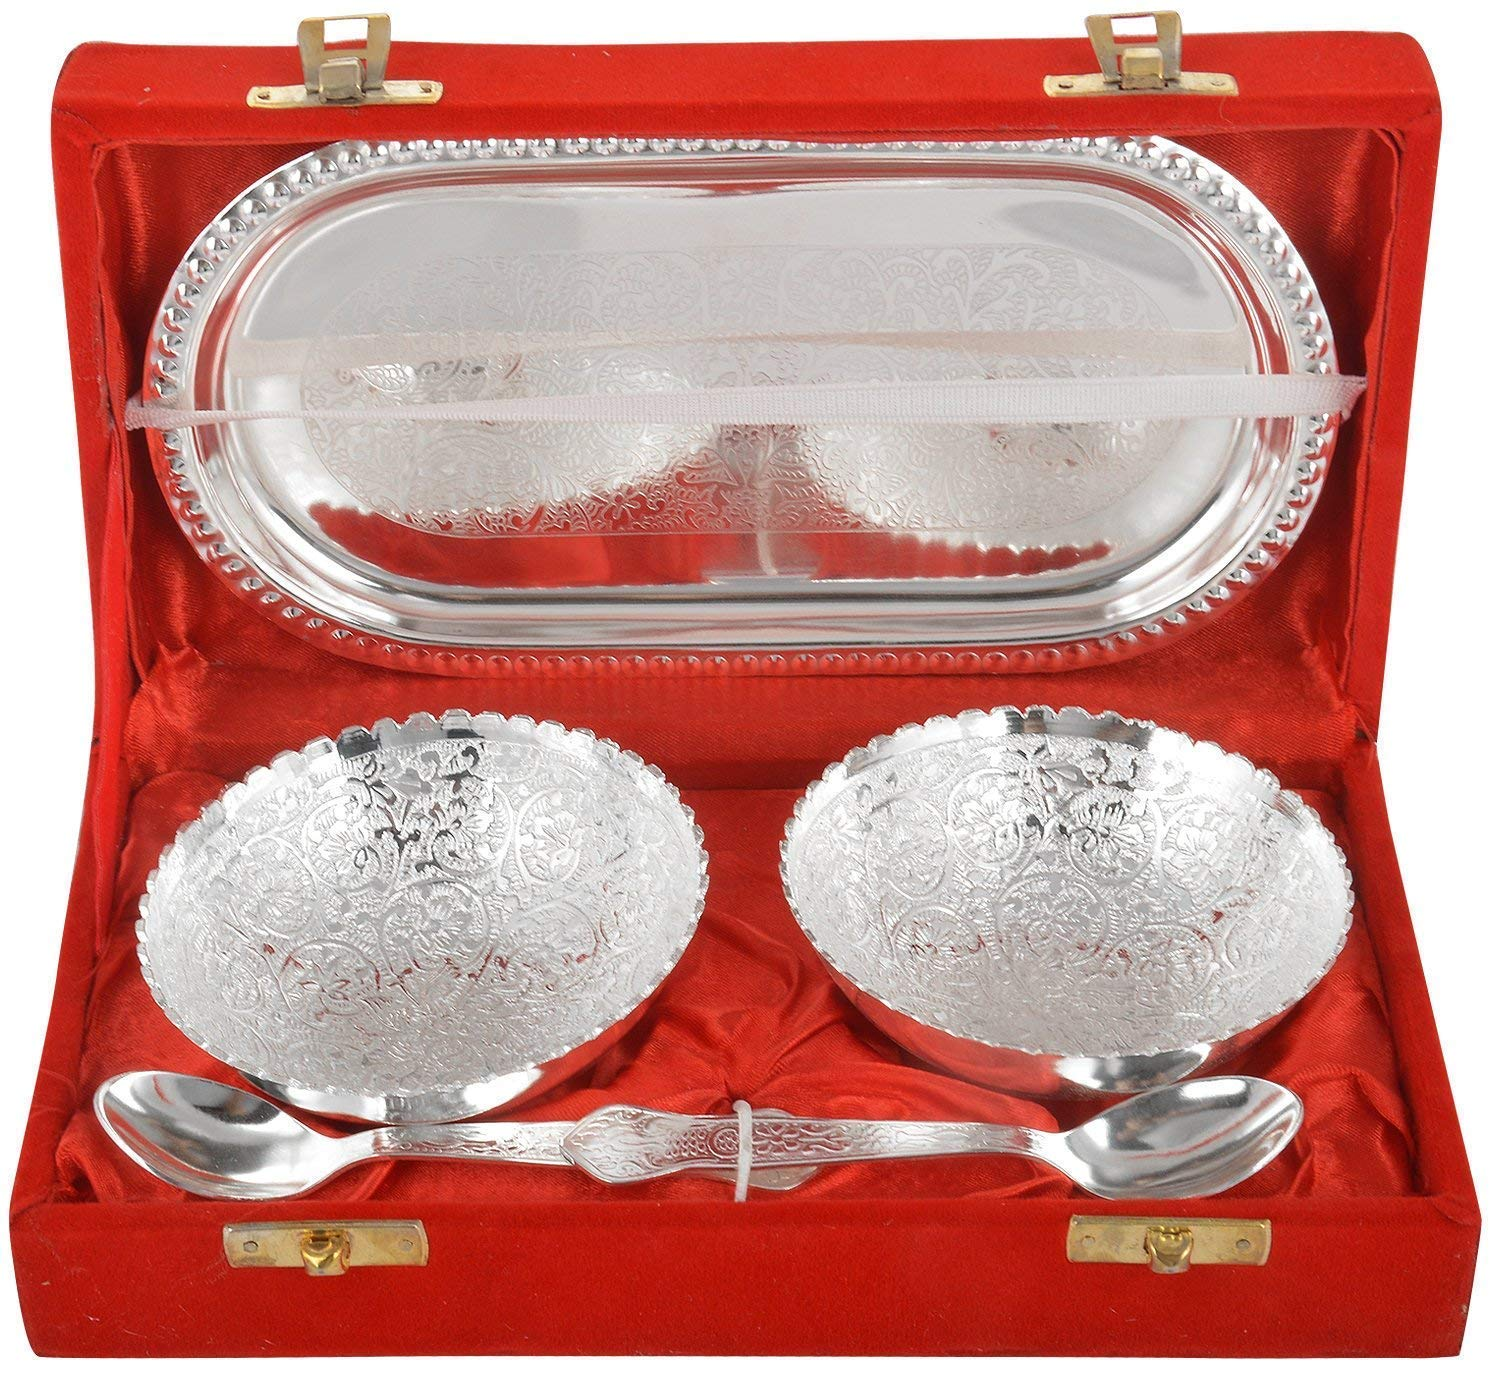 Wedding Return Gifts In Bangalore: Jaipur Ace German Silver Bowl, Spoon And Tray Set